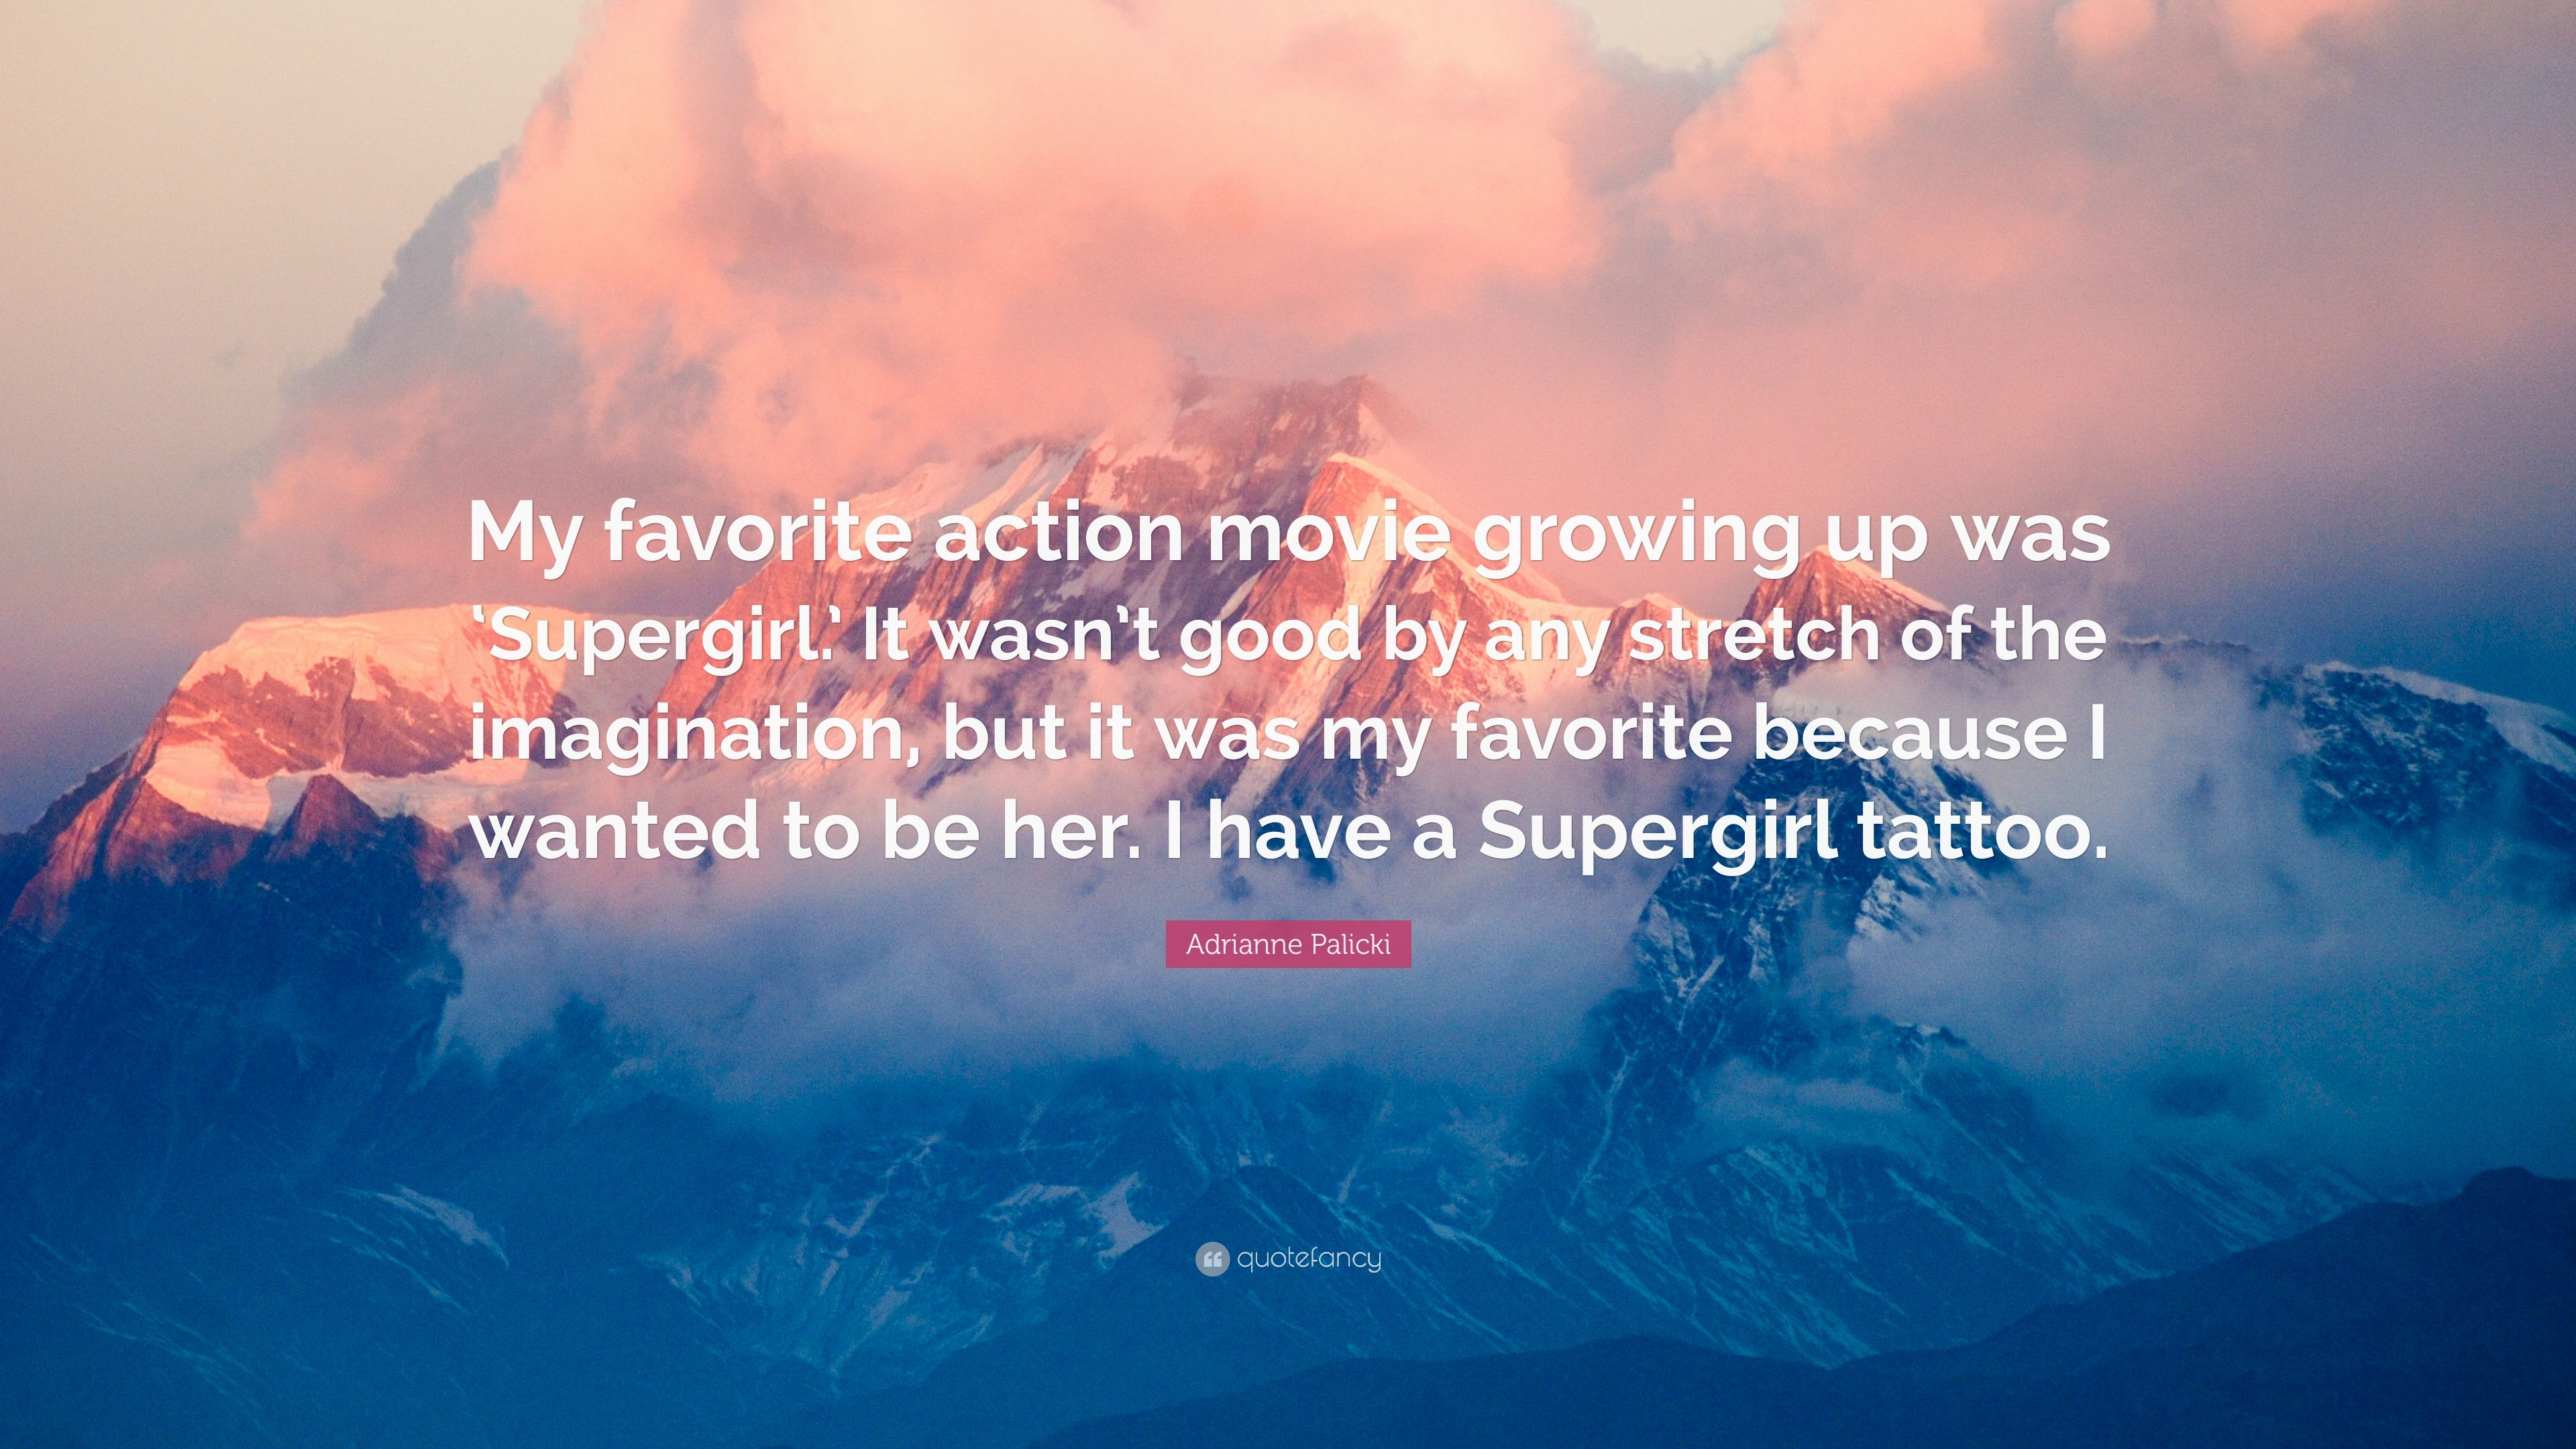 adrianne palicki quote my favorite action movie growing up was